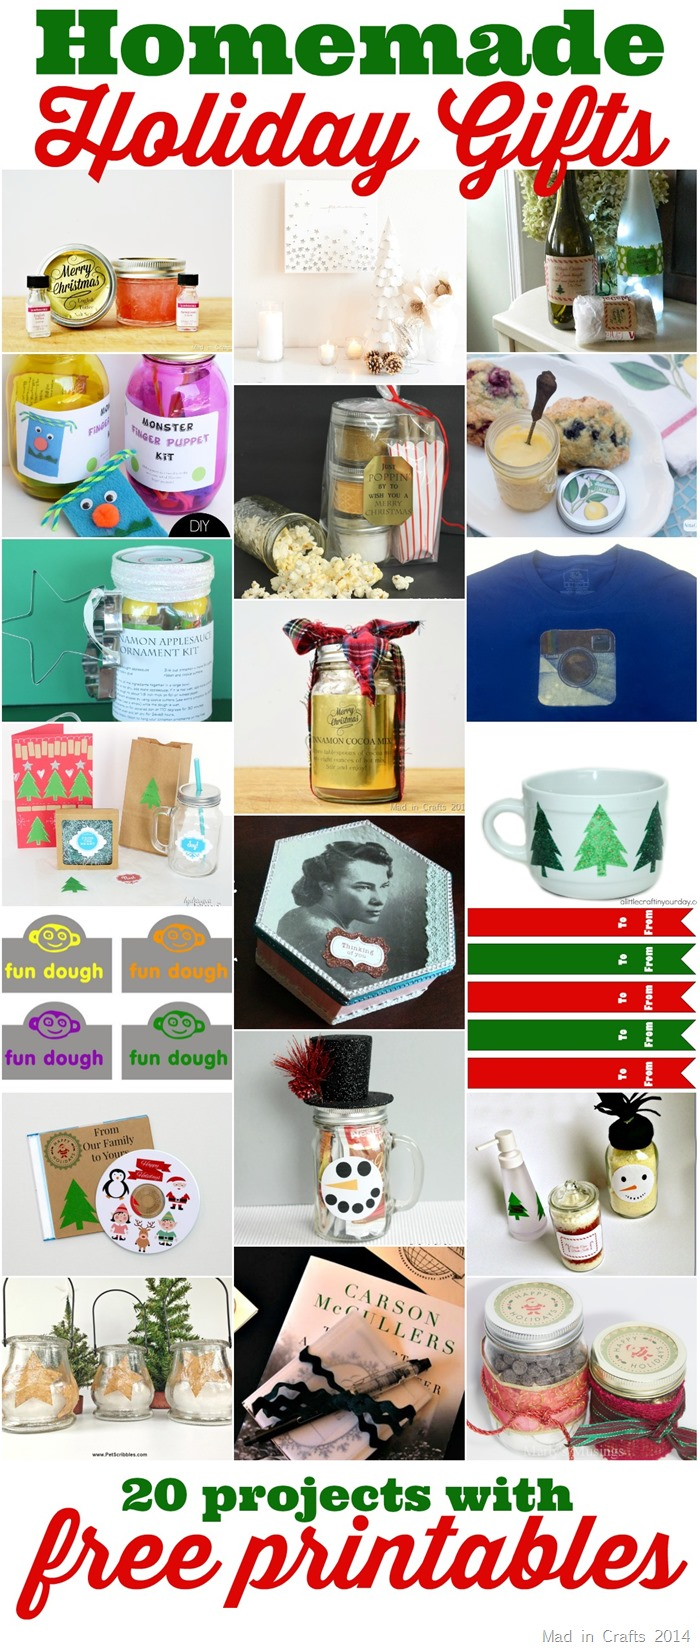 Holiday Gifts Using Printable Labels